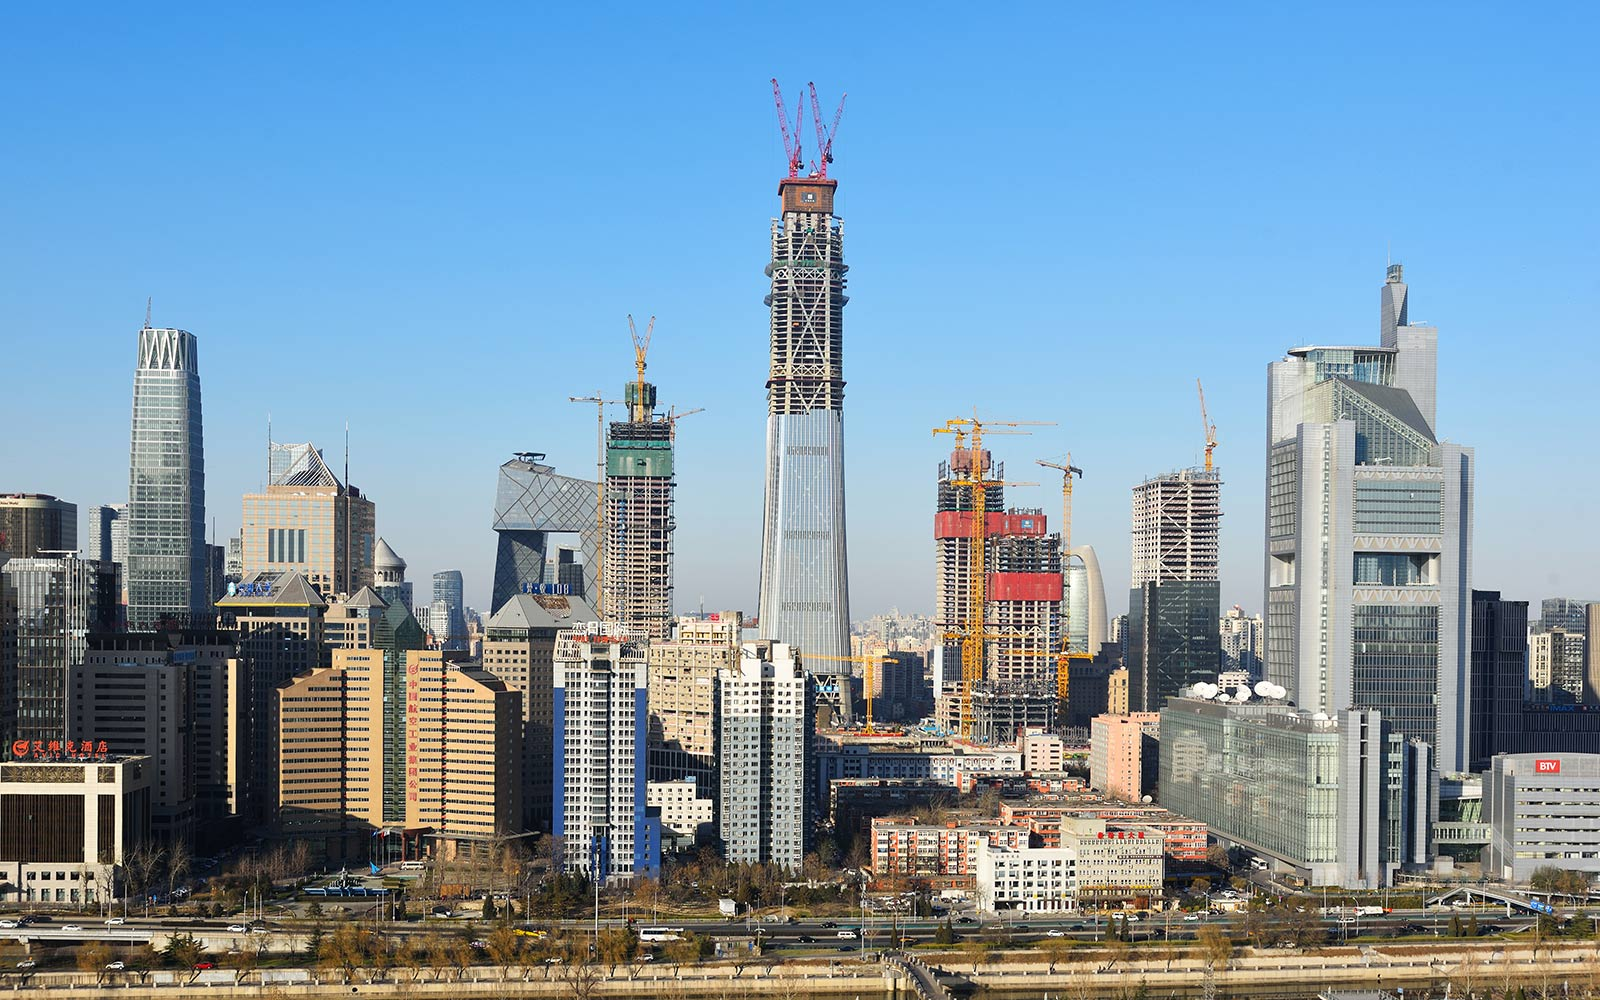 Citic Tower in Beijing, China